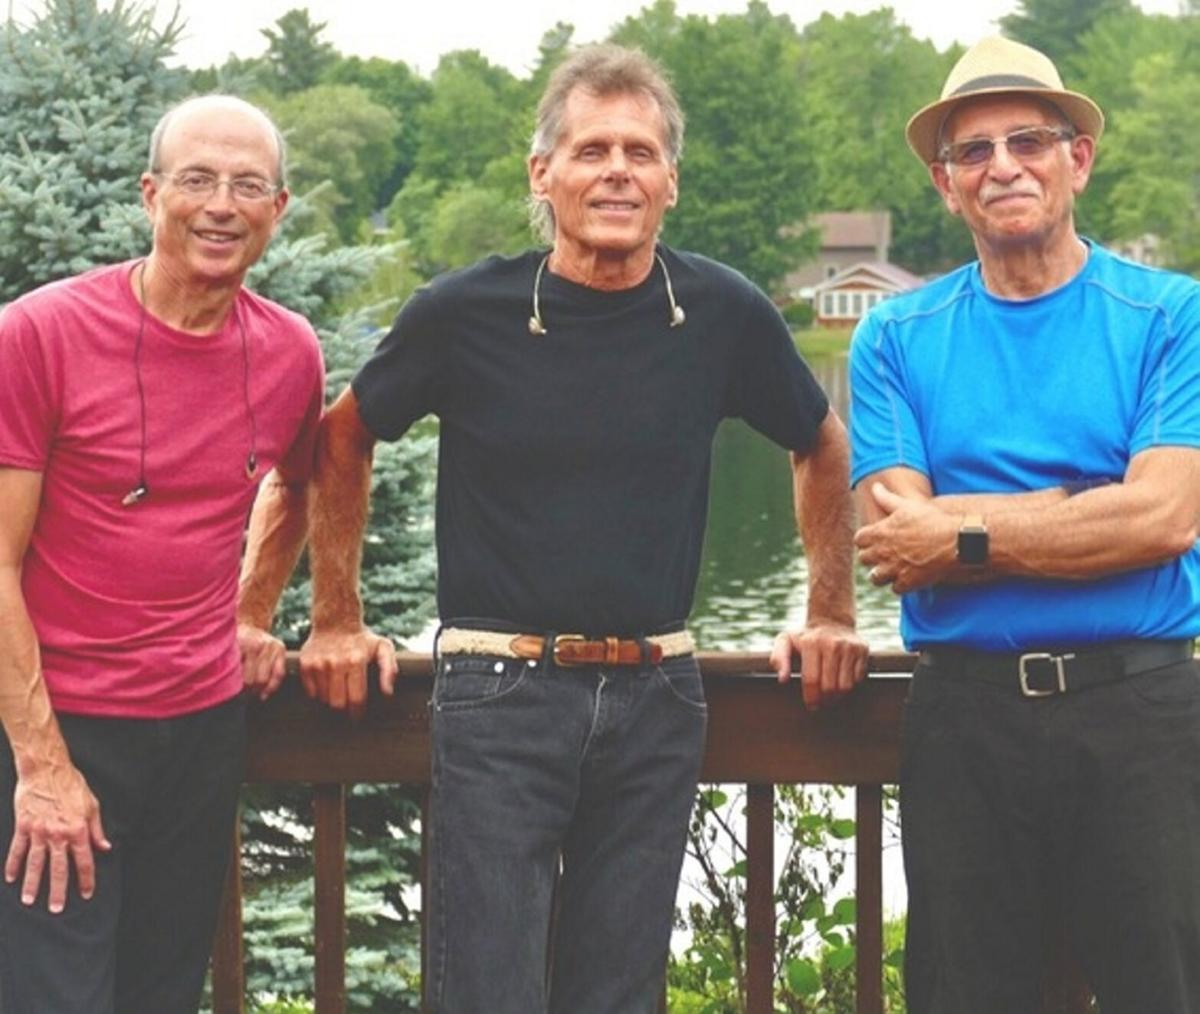 Two upcoming concerts at Norwood Village Green